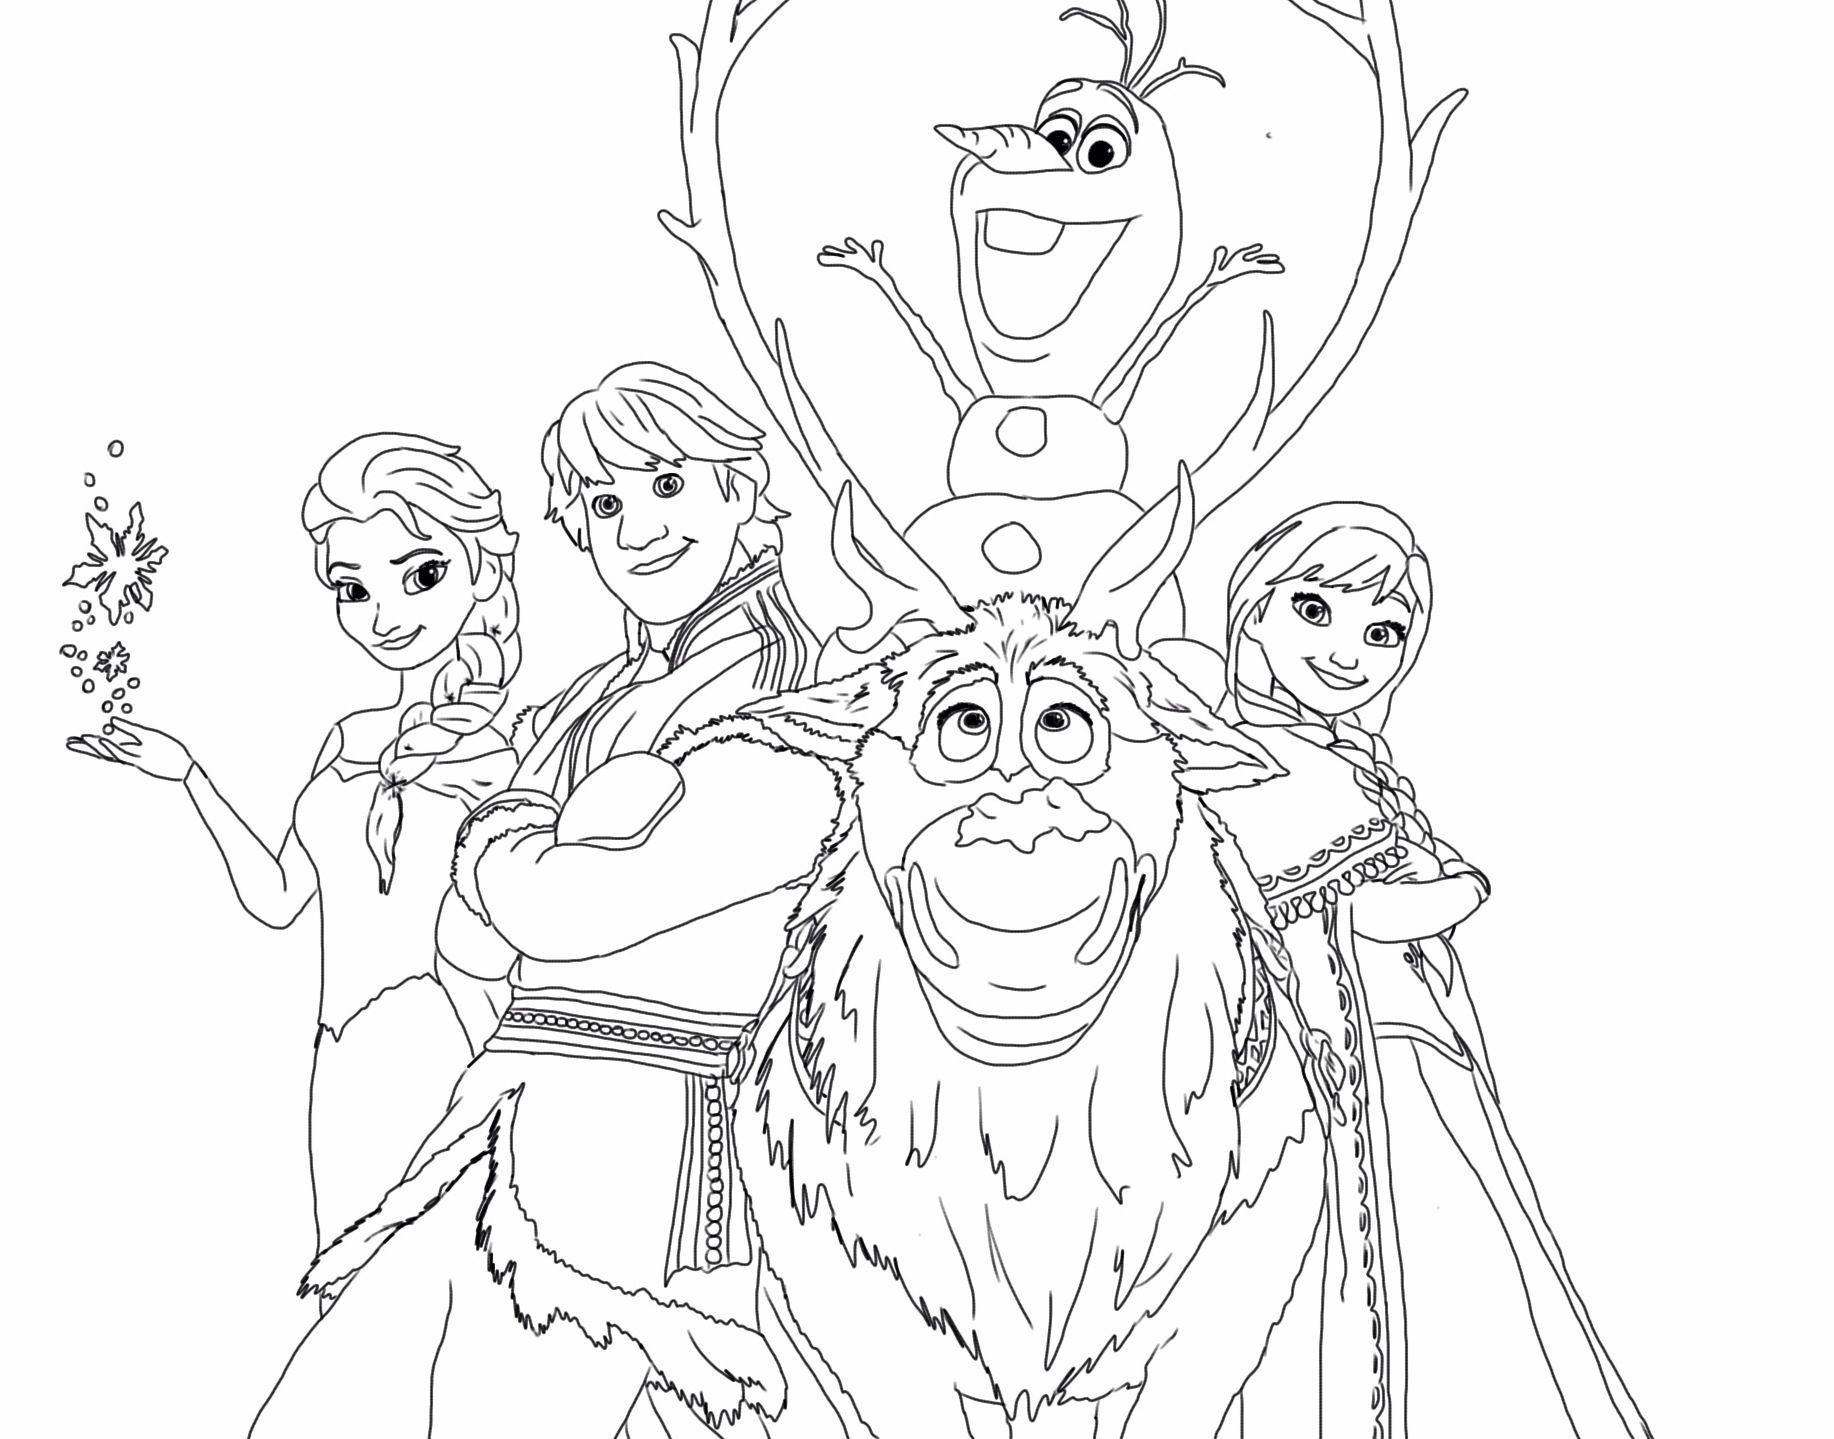 Coloring Pages : Frozen Happy Family Free Coloring Page Disney Kids - Free Printable Coloring Pages Disney Frozen